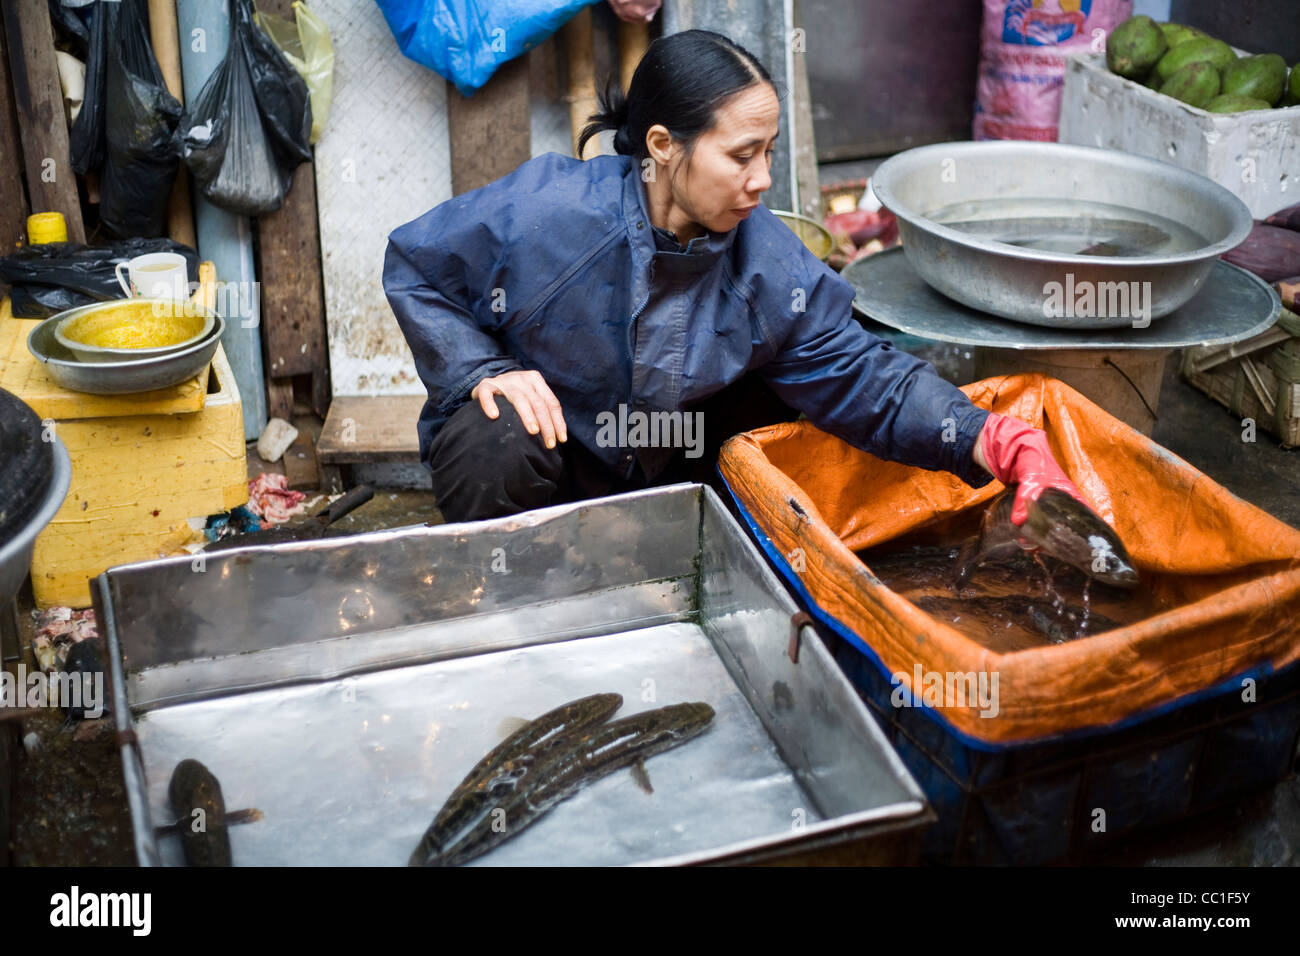 A woman picks up a fish in a tank of water on her stall in the Cau Go Market, Hanoi, Vietnam - Stock Image